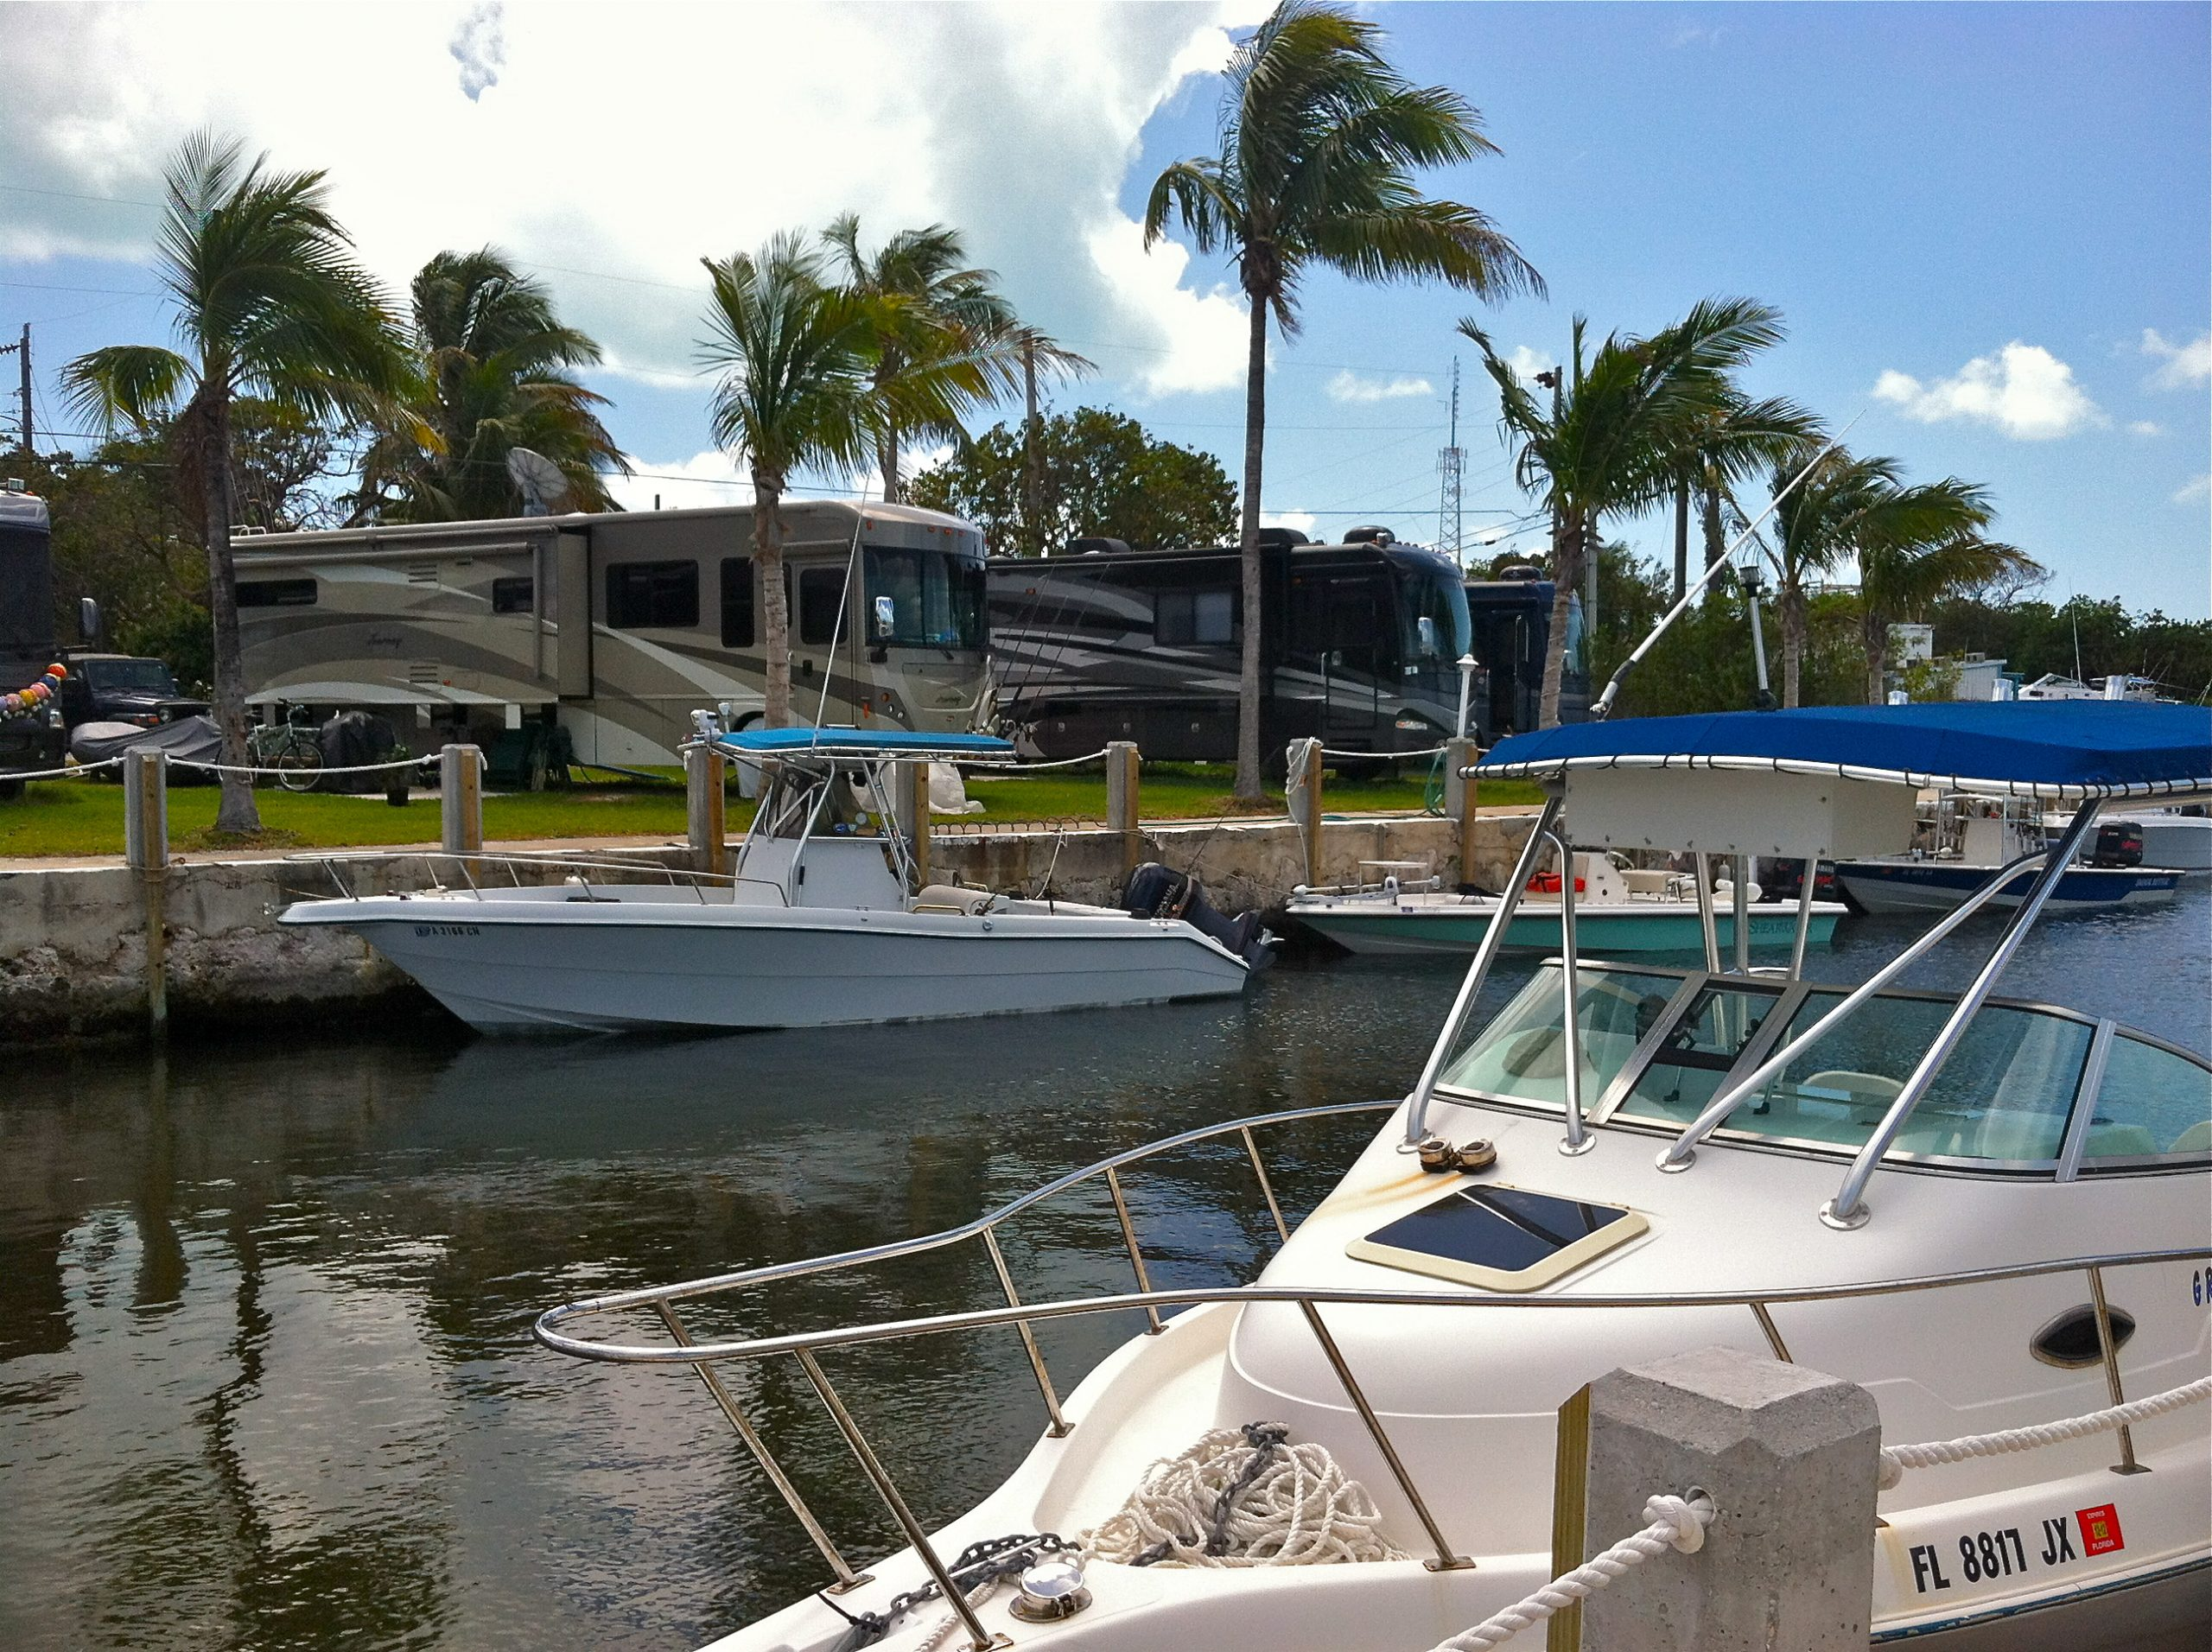 Boats tied to docks with RVs parked in the background under swaying palm trees.